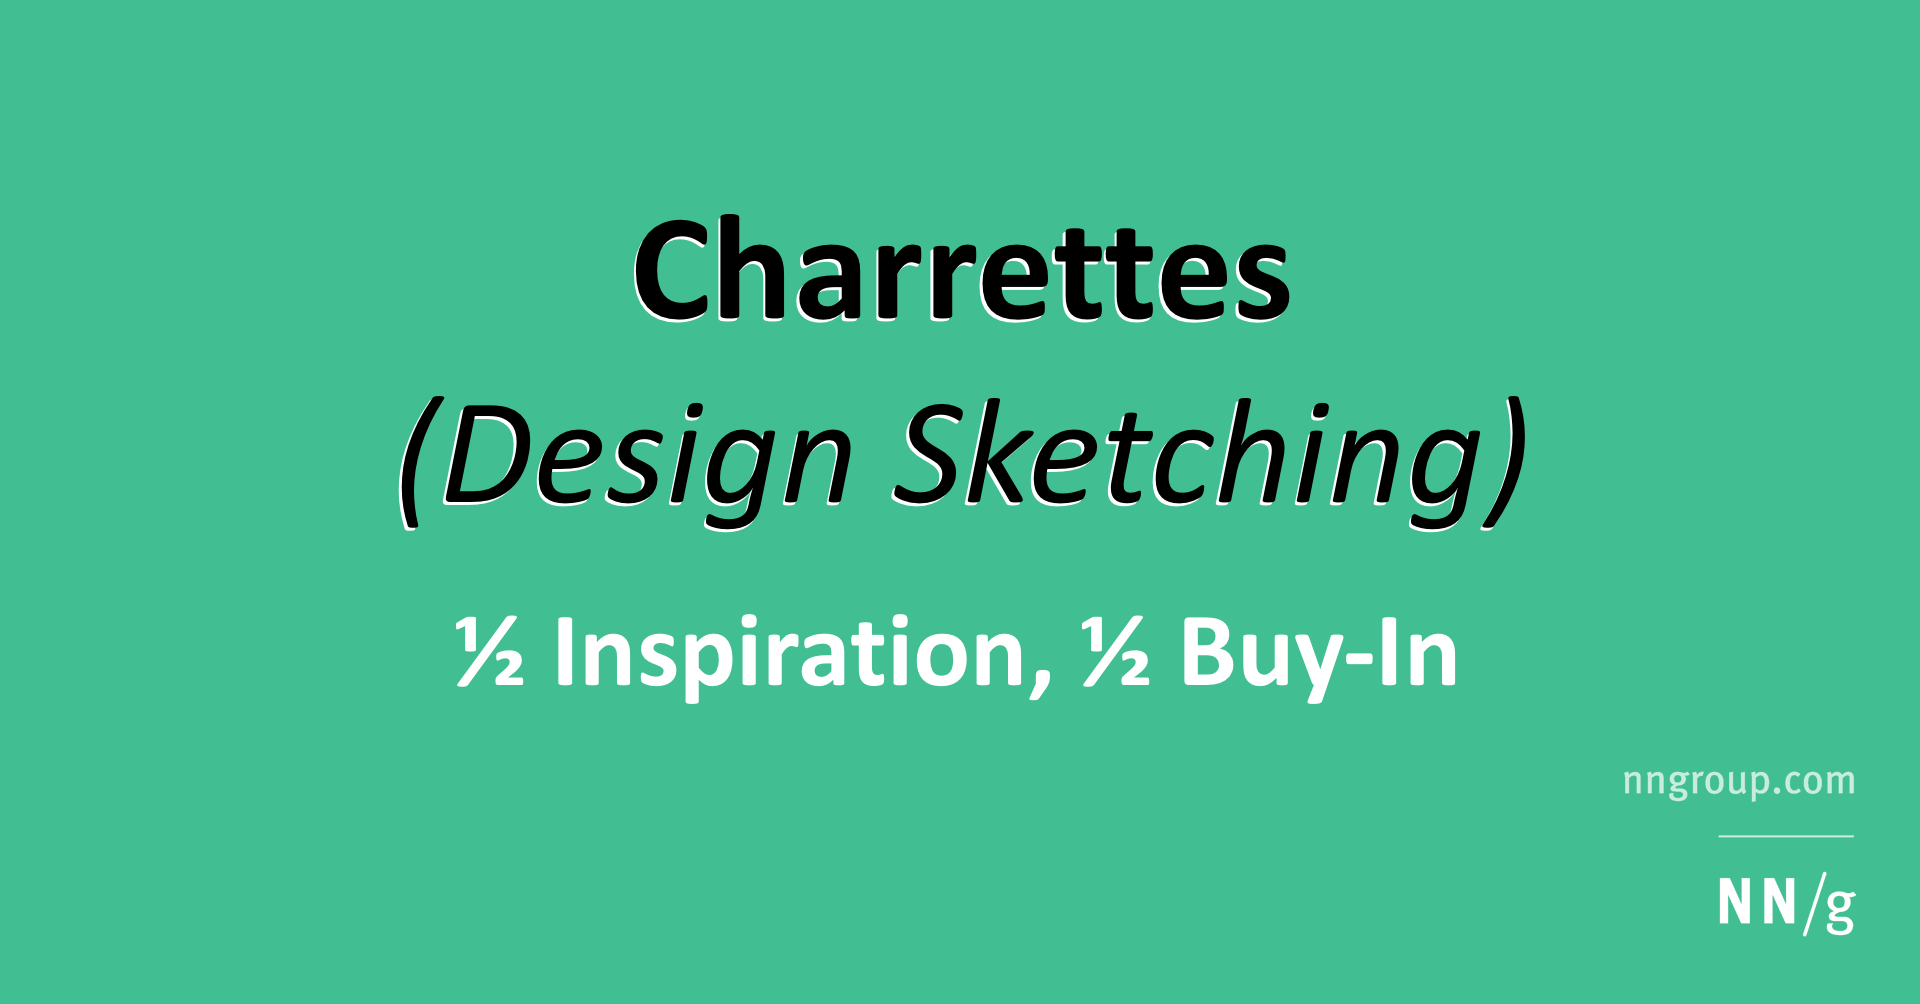 Design Charrettes & Team Sketching: ½ Inspiration, ½ Buy-In